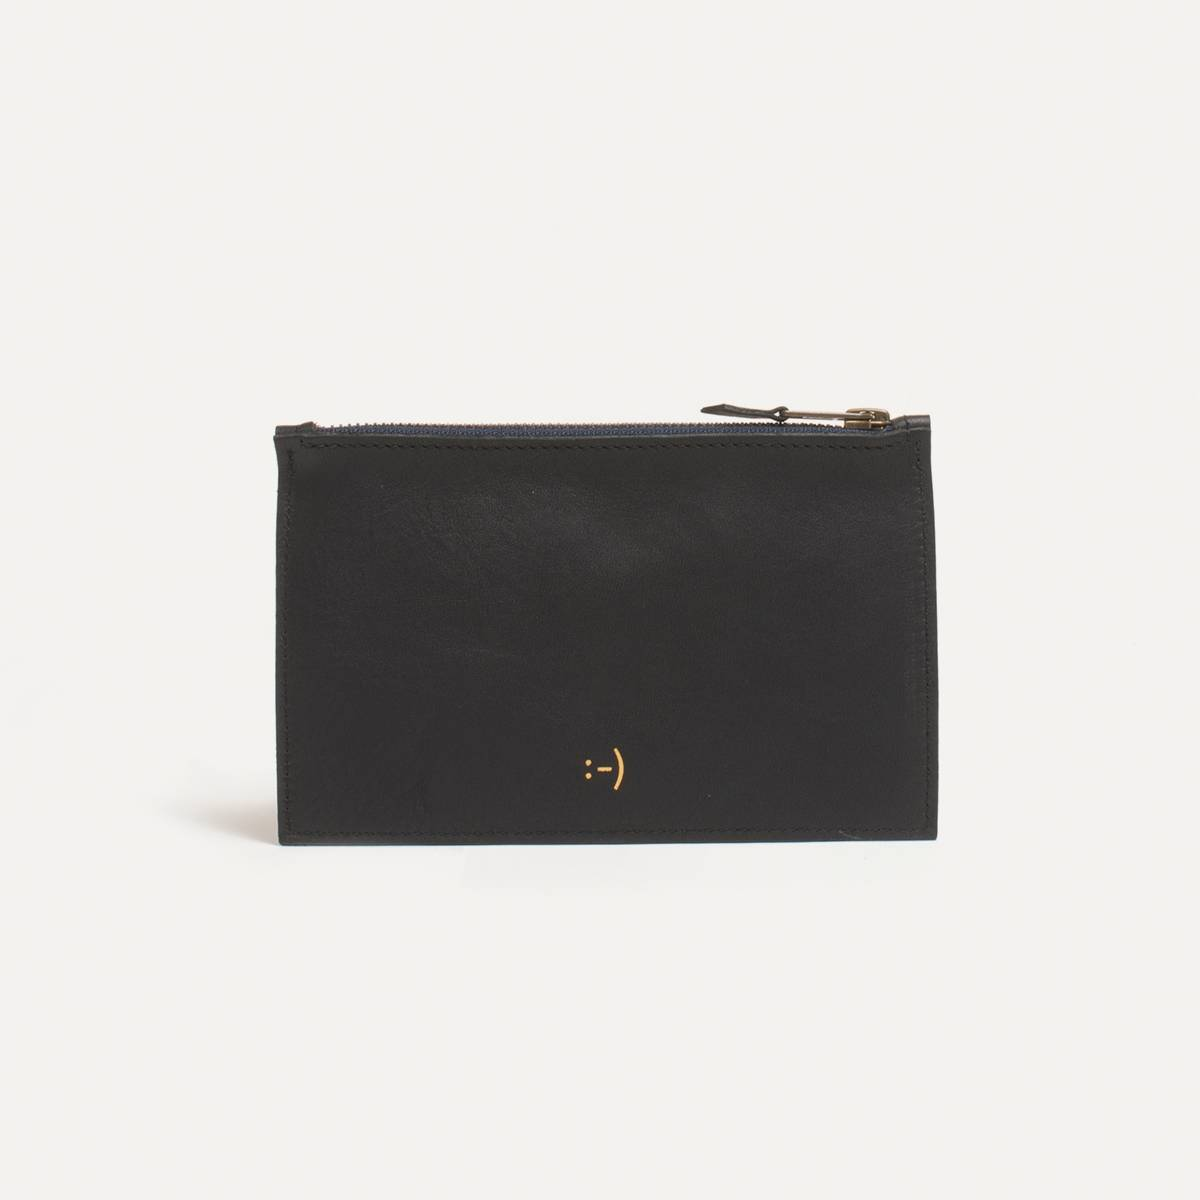 Leather Pouch COSMO S - Black (image n°1)